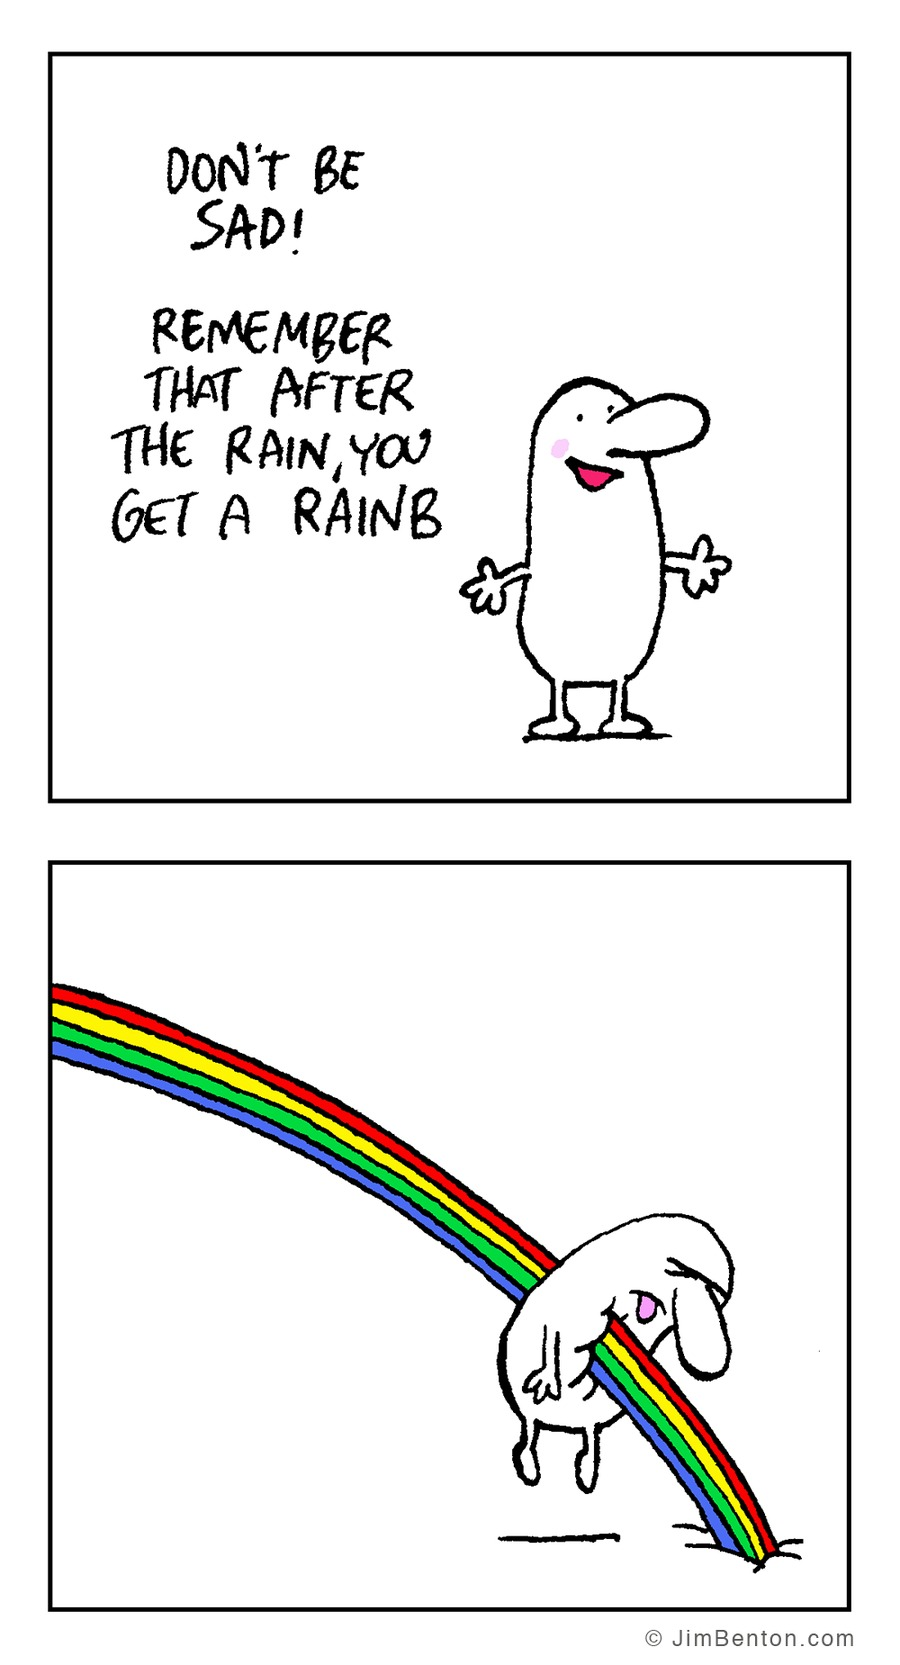 Don't be sad!~ remember that after the rain, you get a rainb